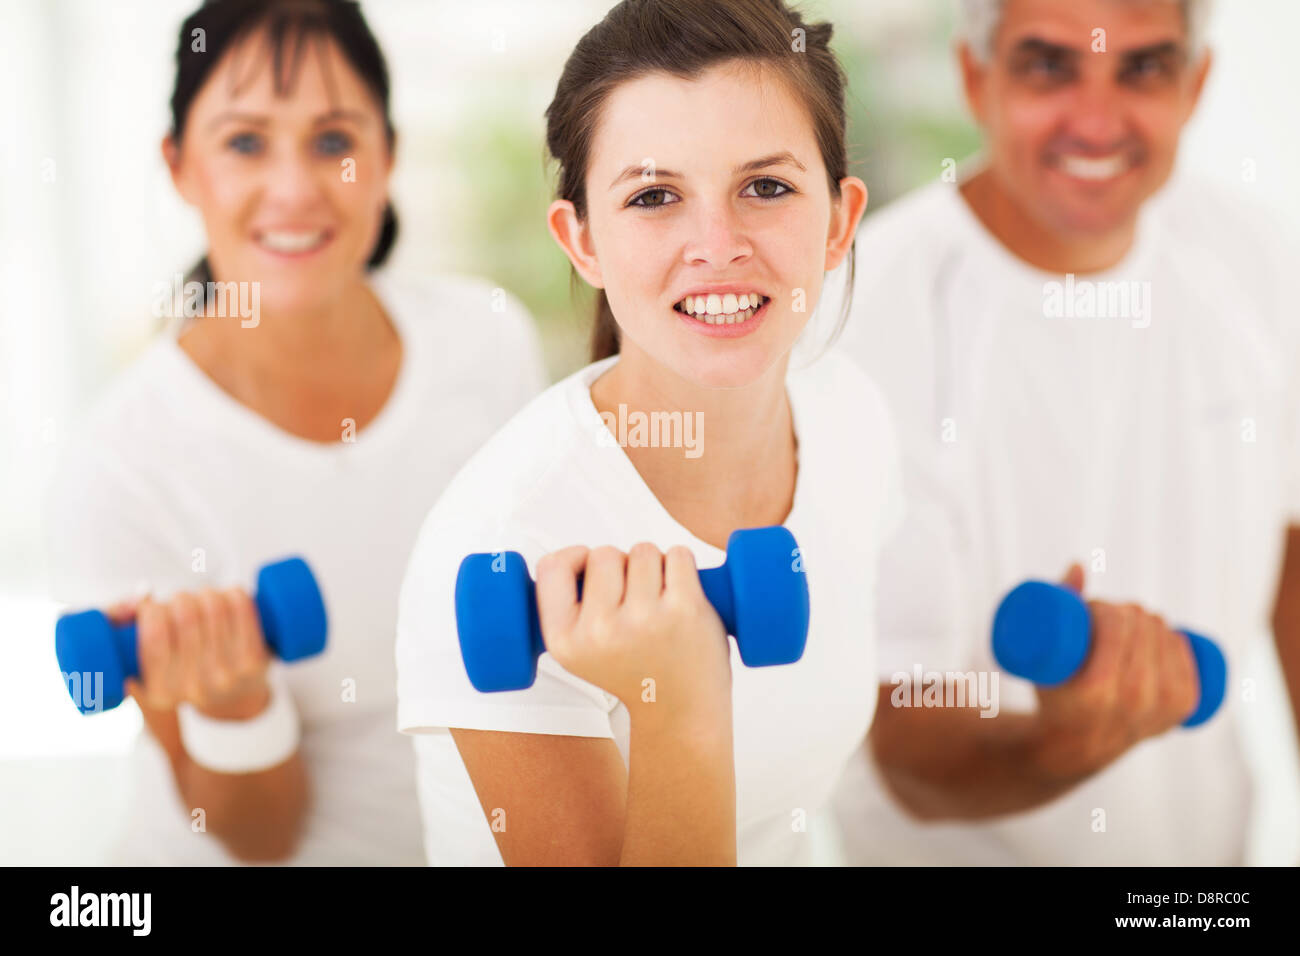 pretty teen girl working out using dumbbell with parents - Stock Image